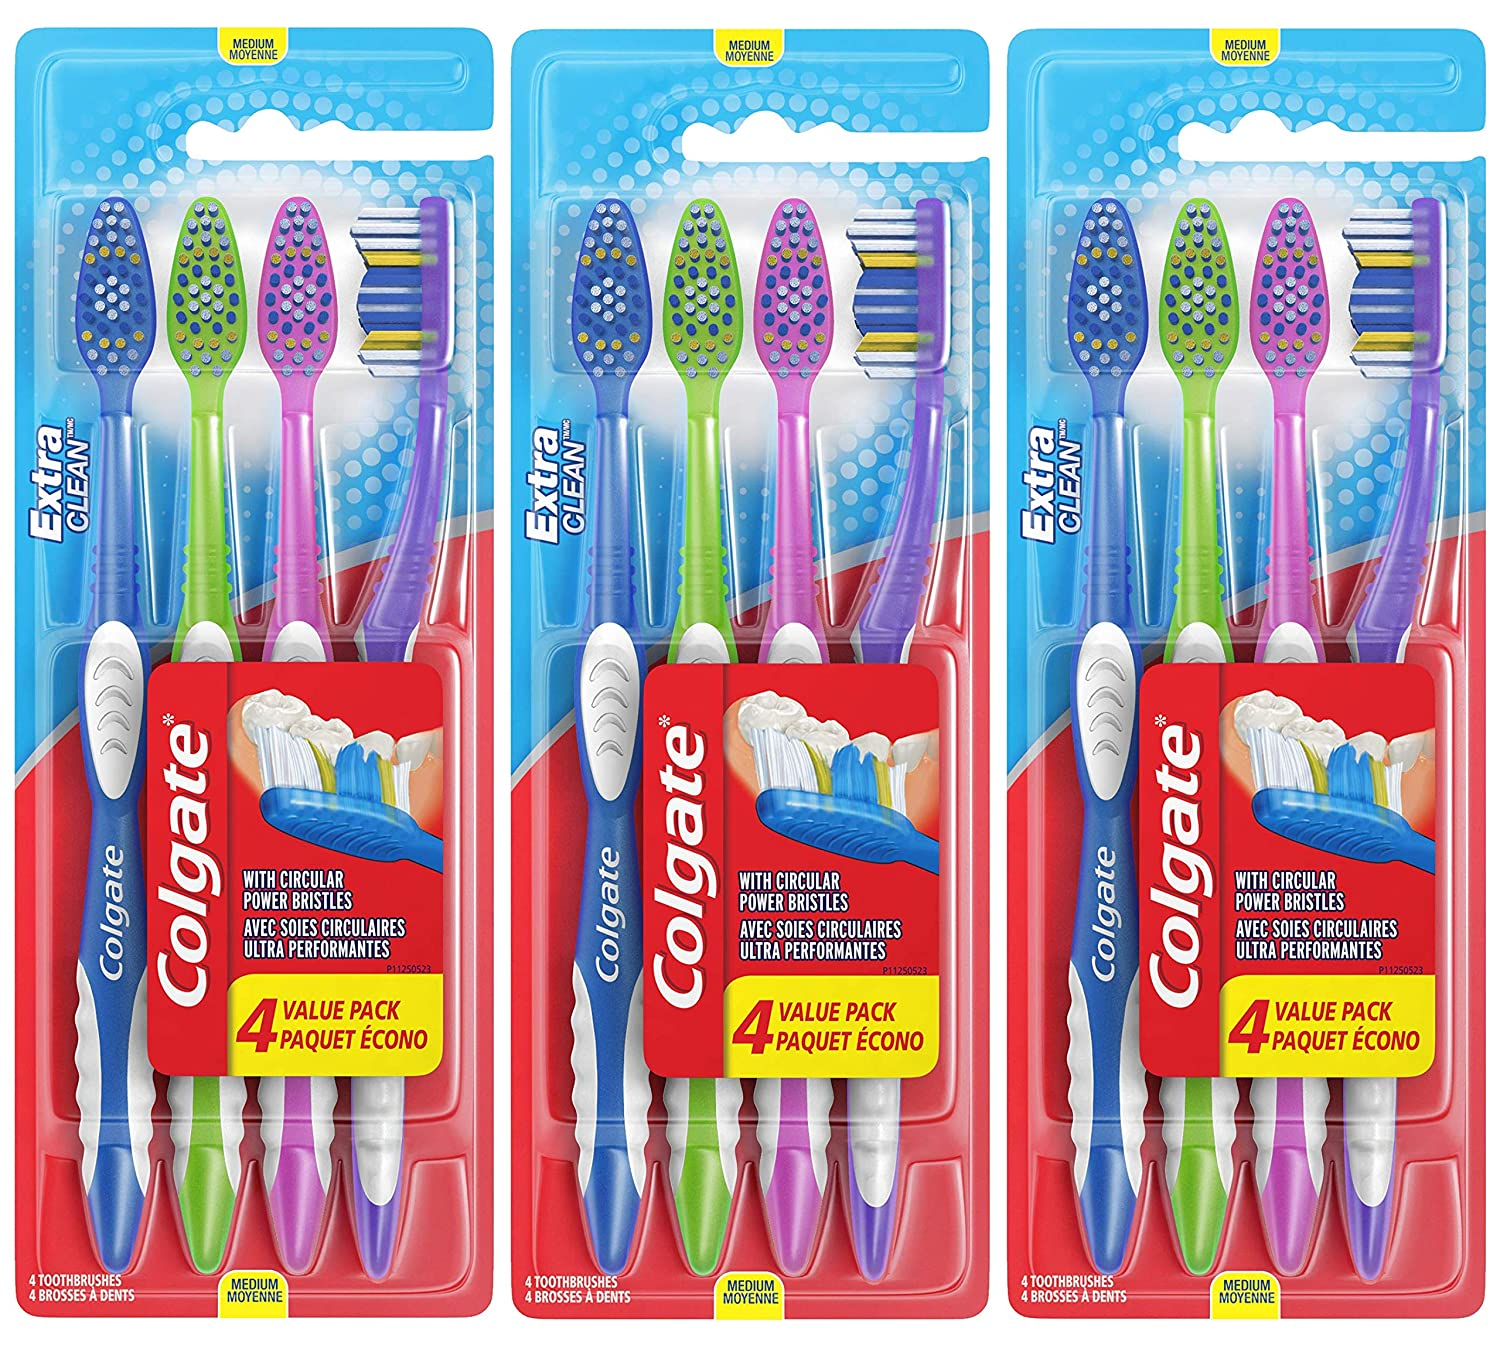 Colgate Extra Clean Full Head Toothbrush, Medium - 6 Count : Beauty